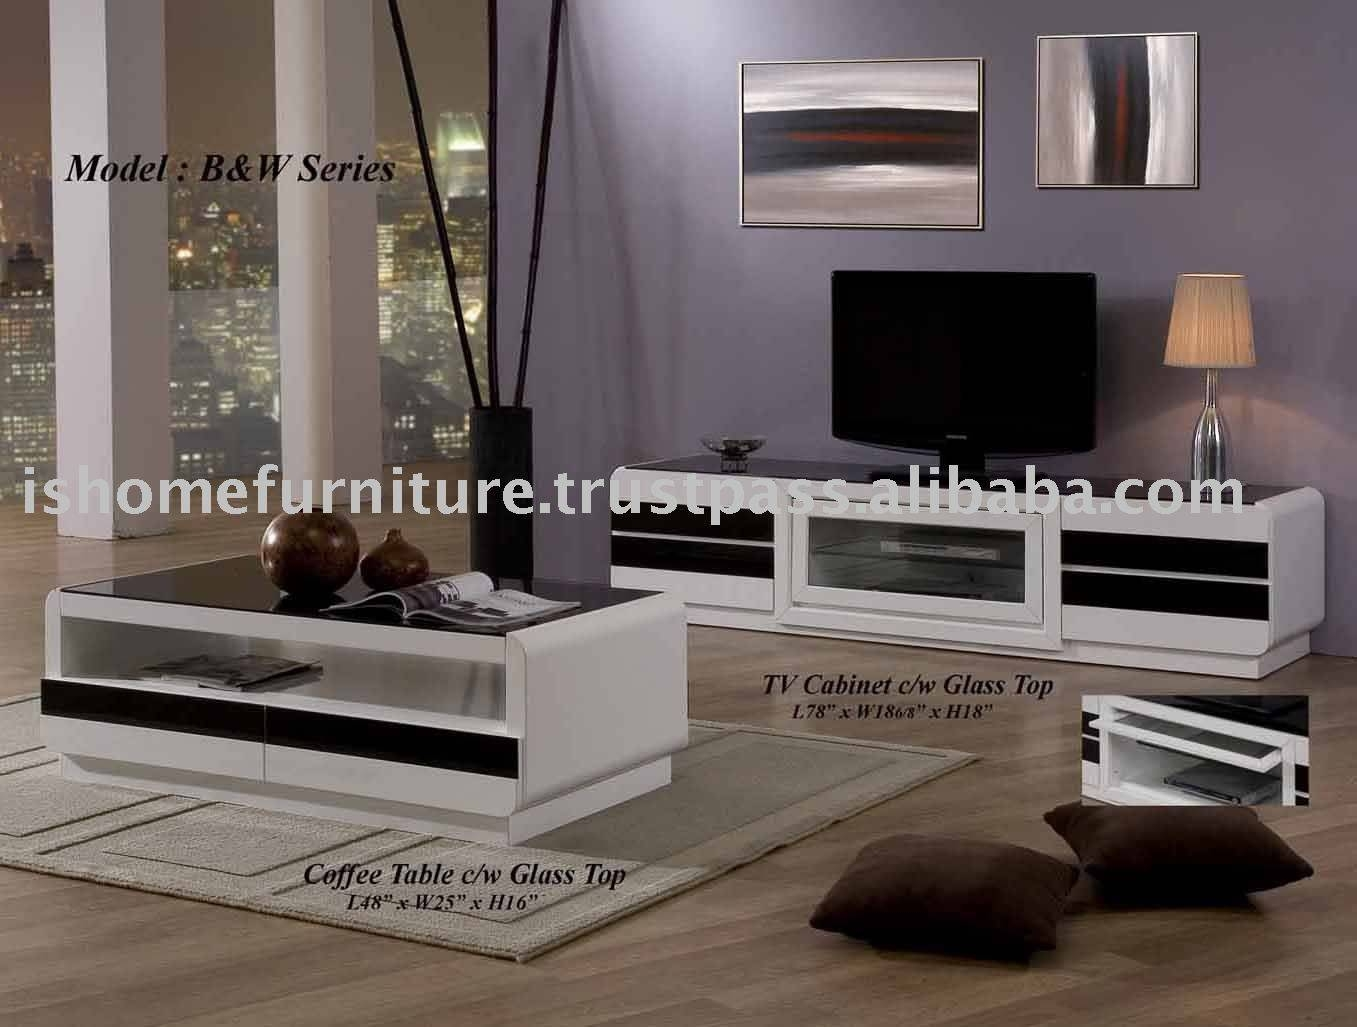 B&w Series - Coffee Table,tv Stand - Buy Home Furniture,coffee with regard to Coffee Tables And Tv Stands (Image 3 of 30)